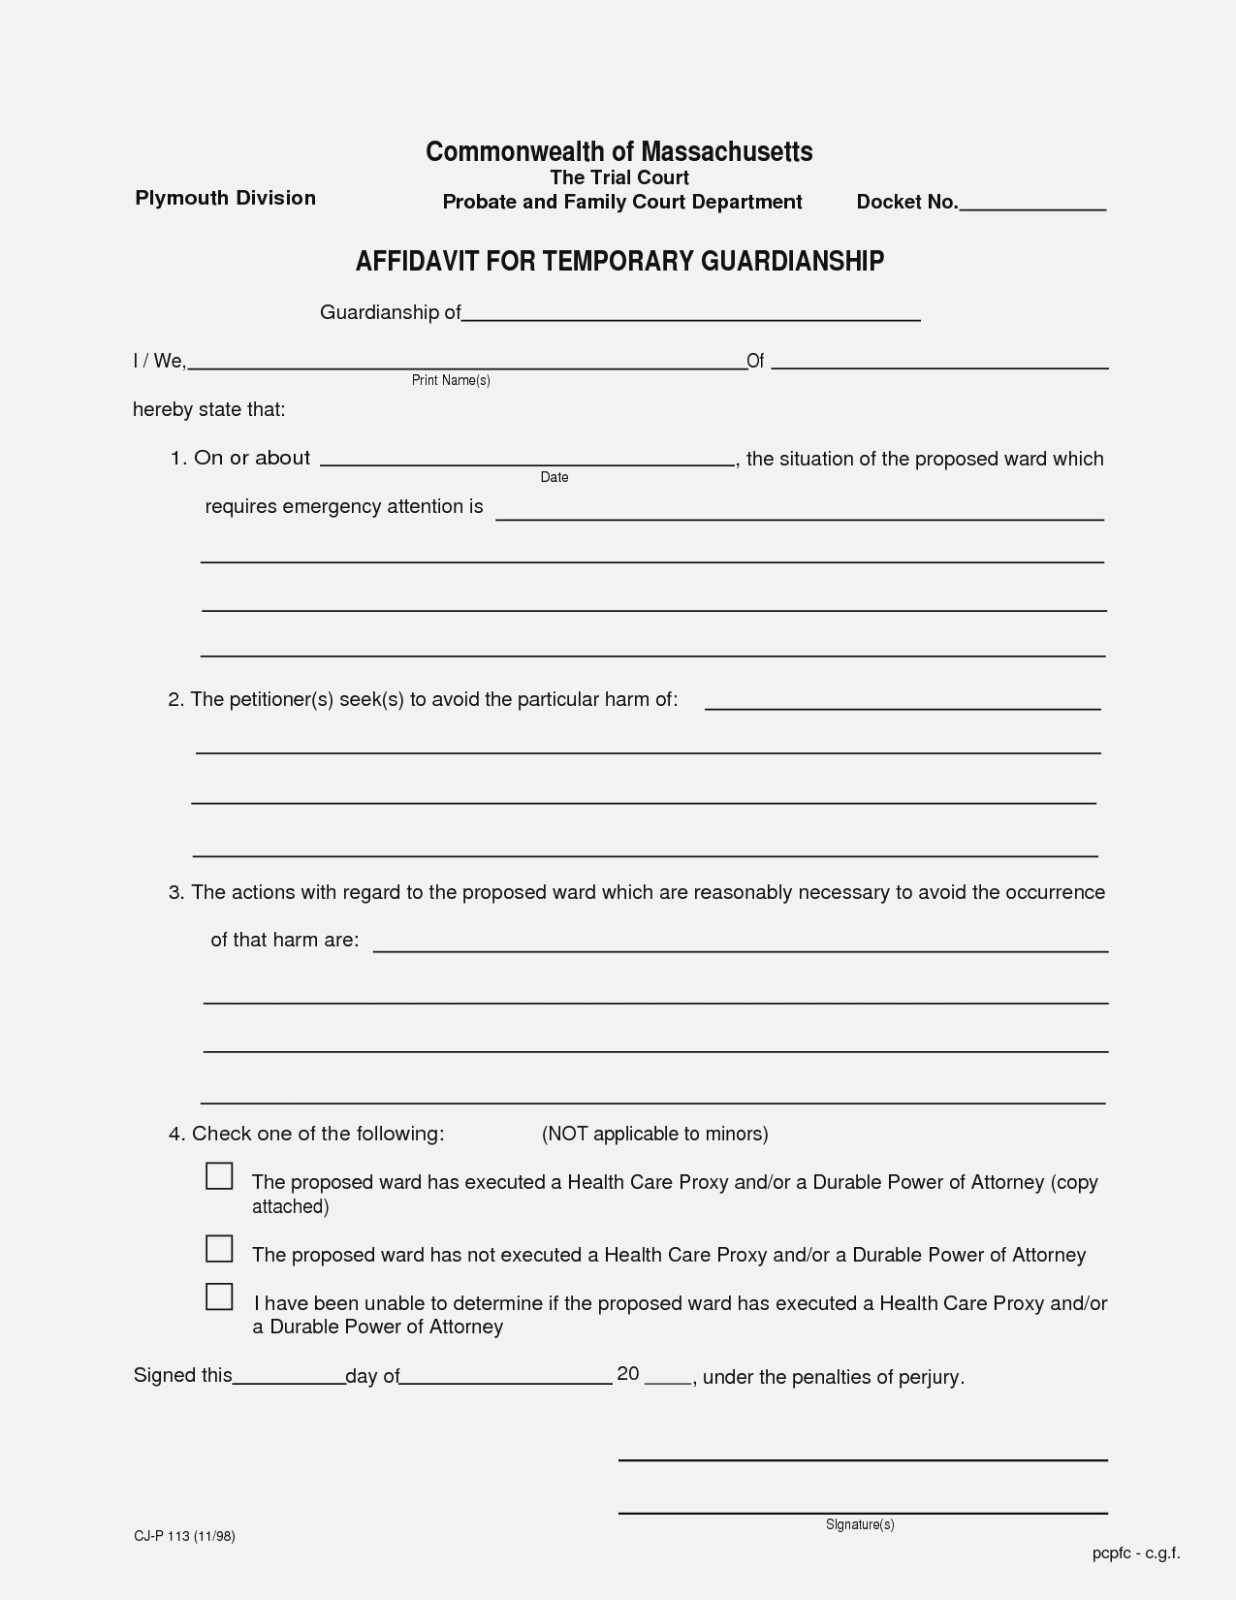 Ten Things You Probably | Realty Executives Mi : Invoice And Resume - Free Printable Guardianship Forms